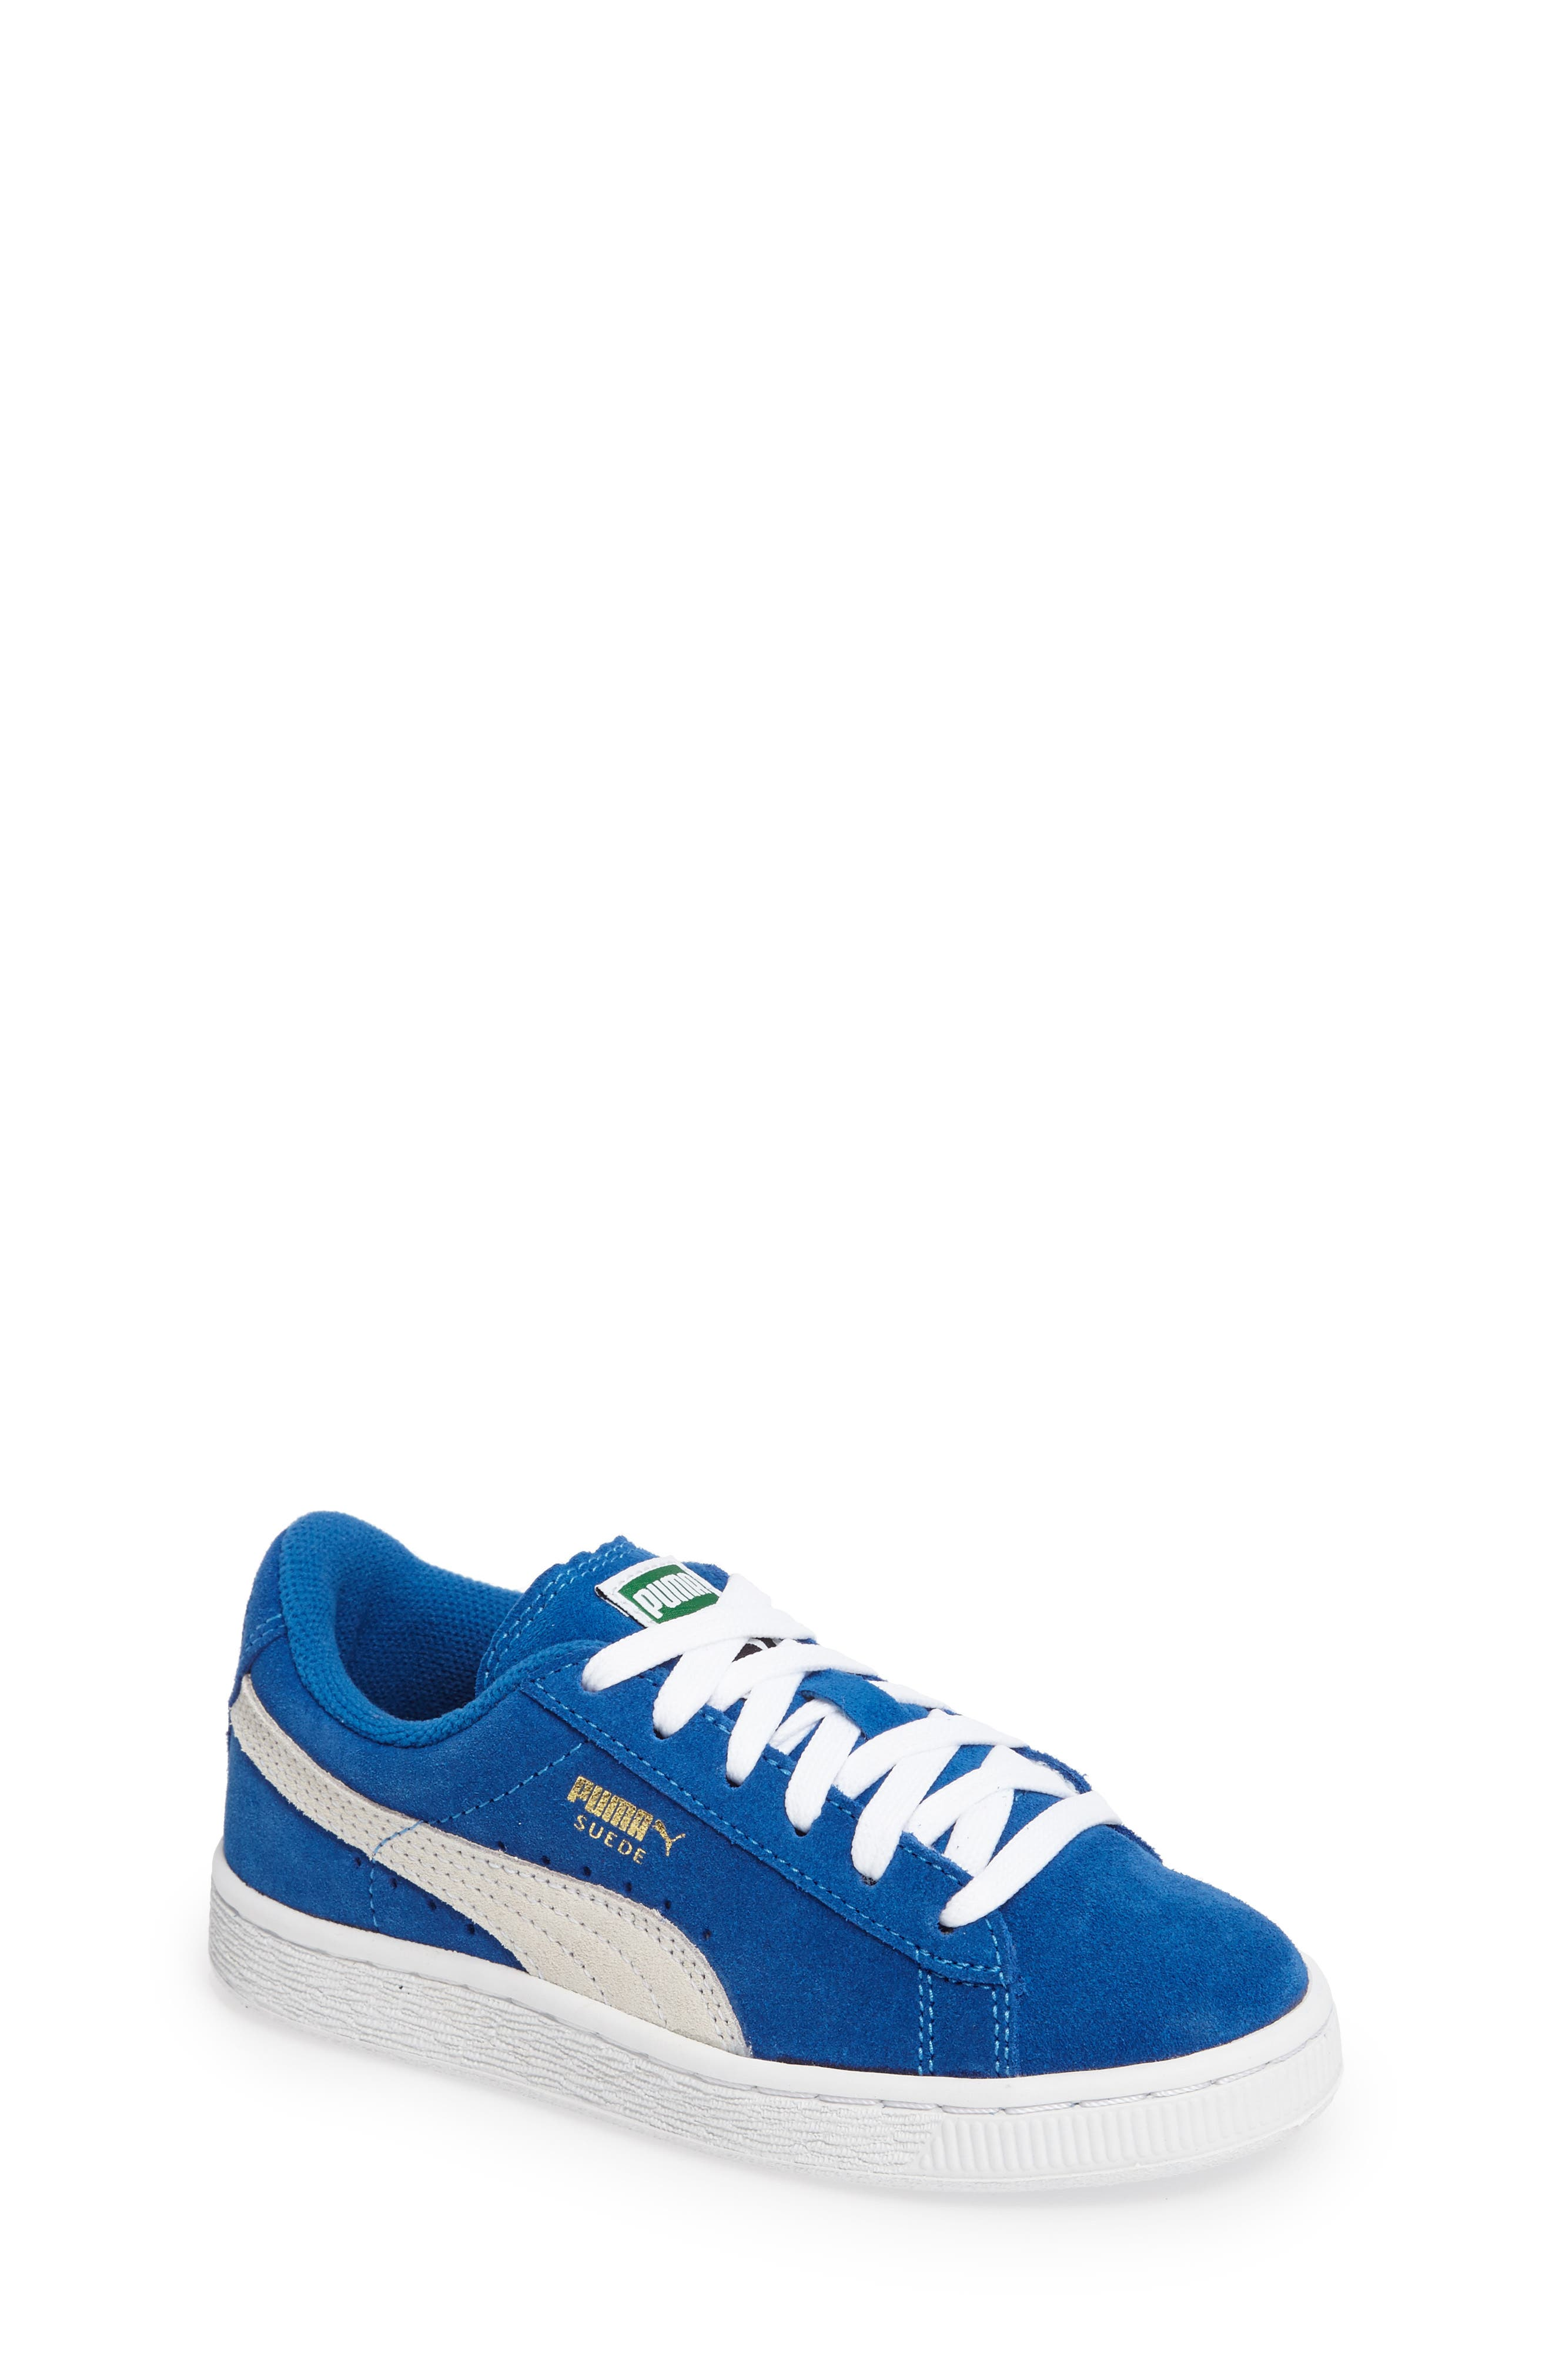 Suede PS Sneaker,                         Main,                         color, Blue